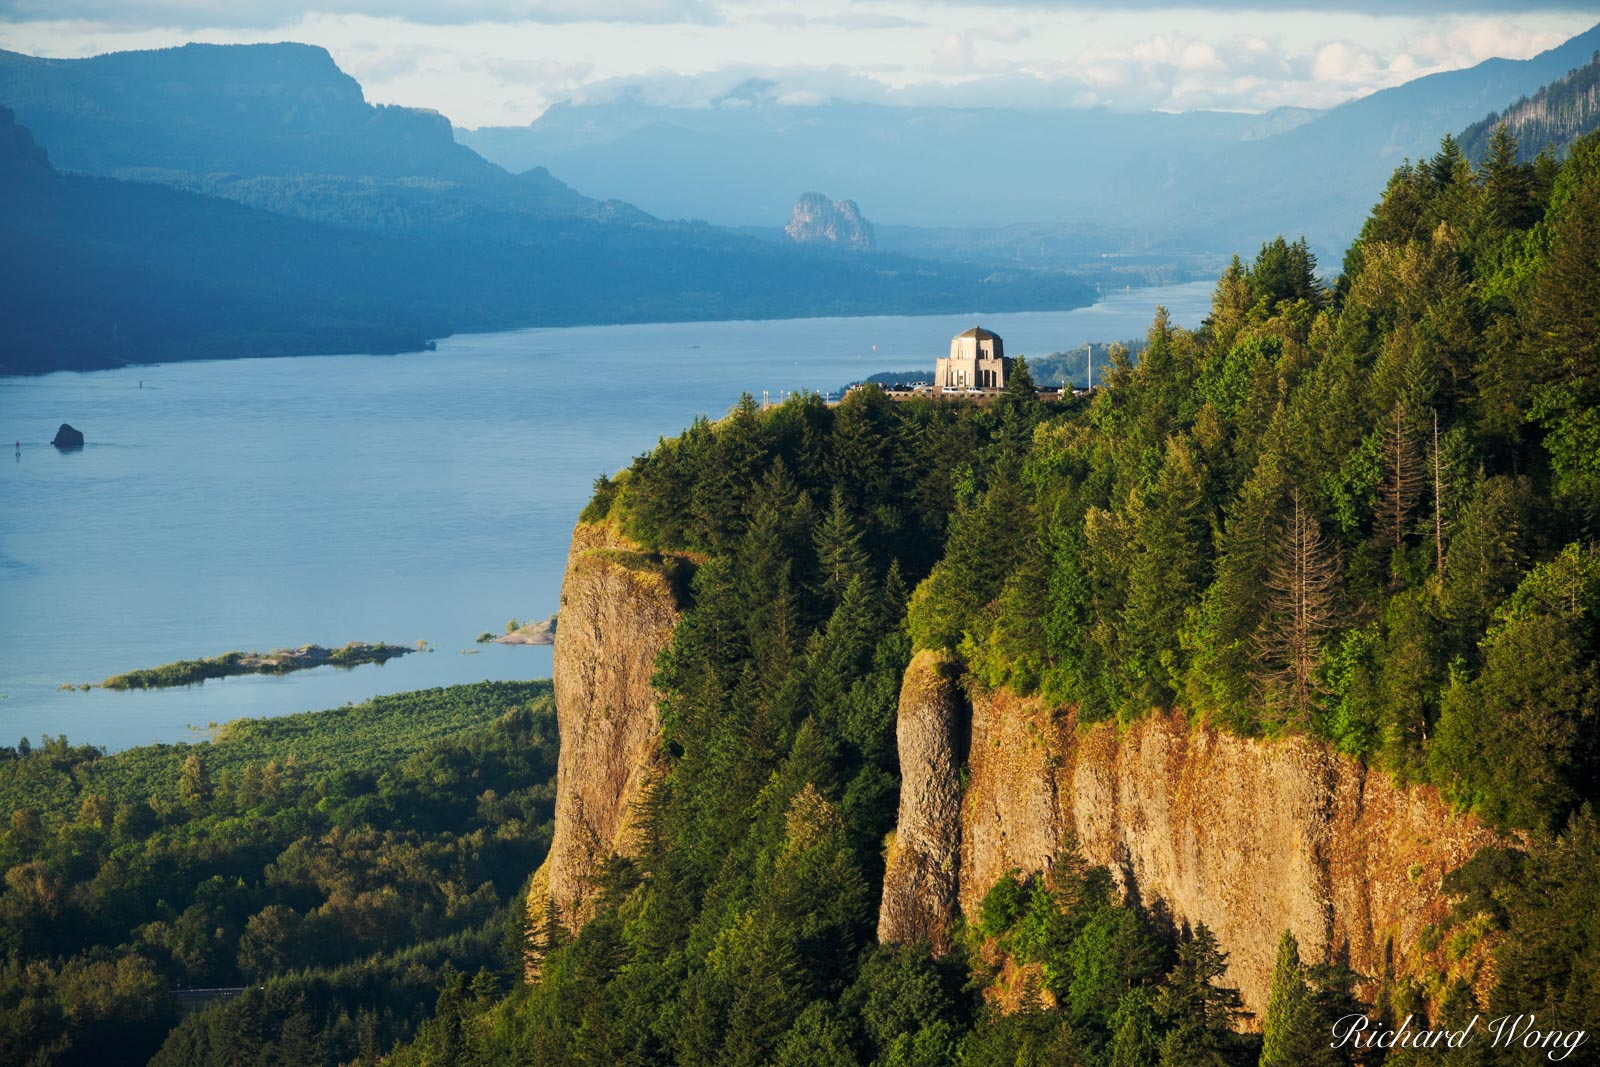 Crown Point Vista House, Columbia River Gorge National Scenic Area, Oregon, photo